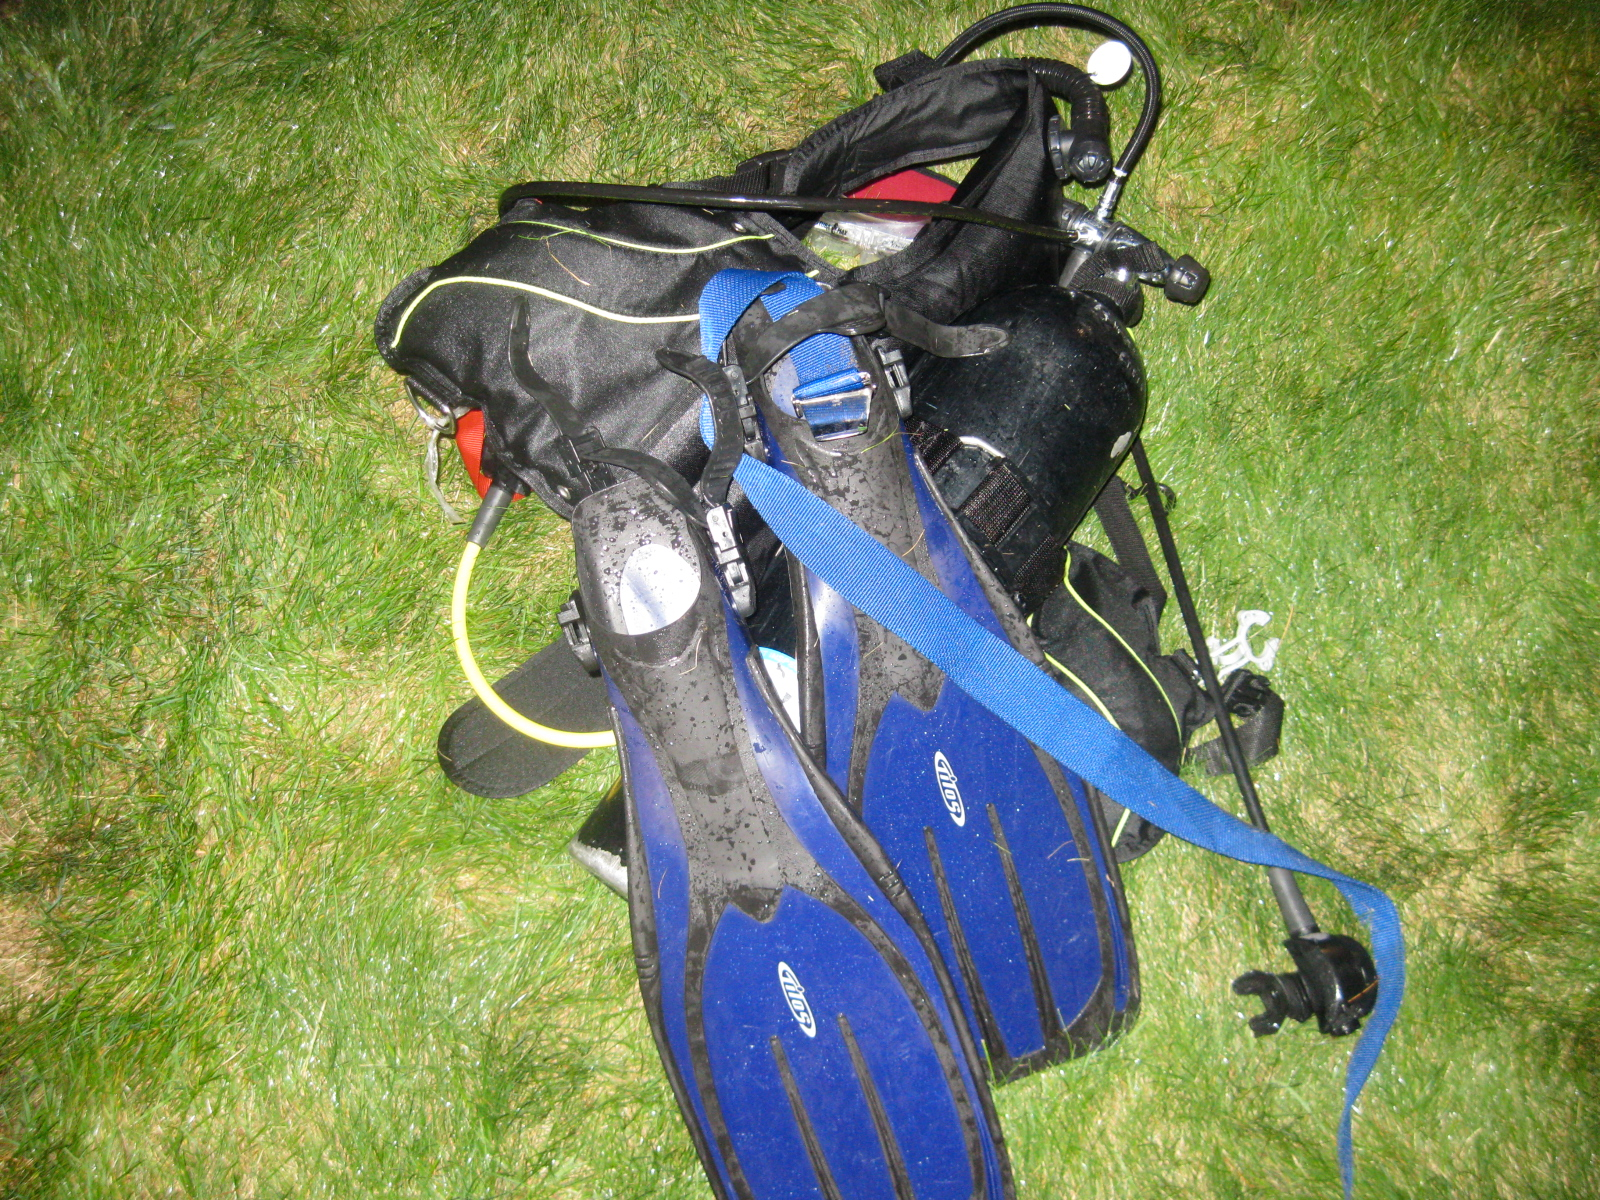 A Canadian man used this scuba gear to smuggle more than 8 pounds of marijuana into Michigan. (Credit: U.S. Border Patrol)